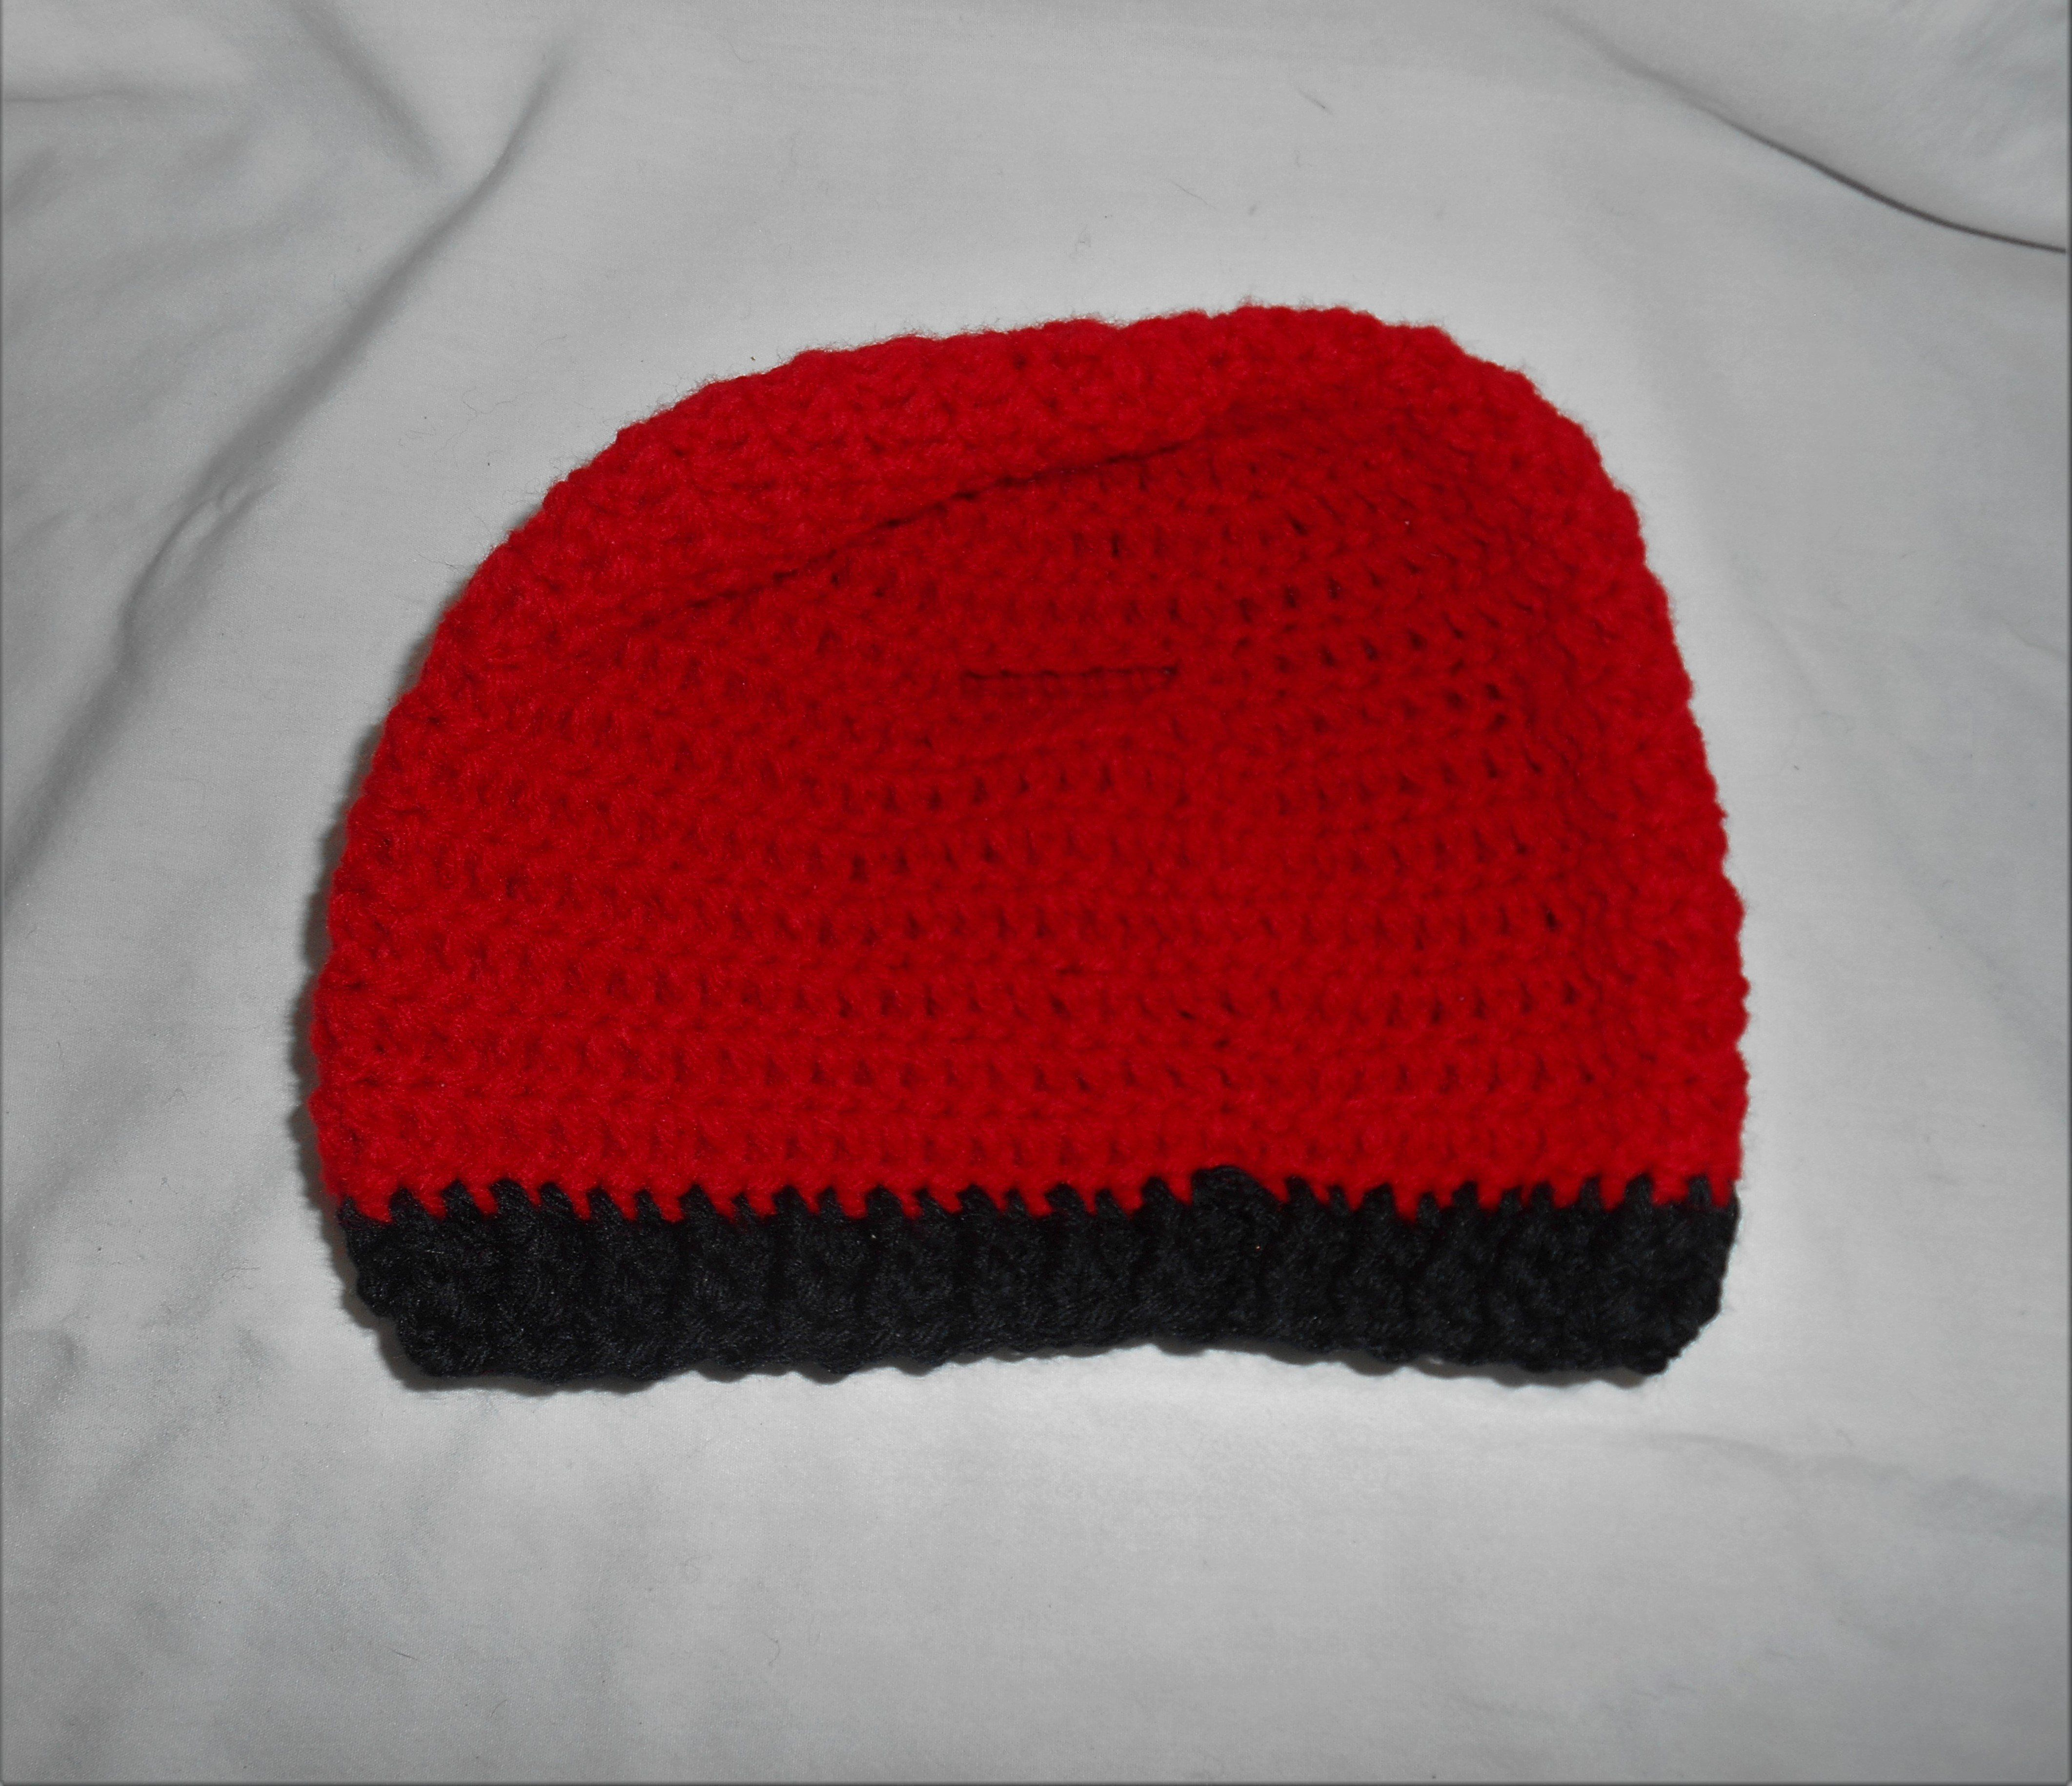 Crochet Ponytail Beanie Hat Red with Black Trim sz med-lg